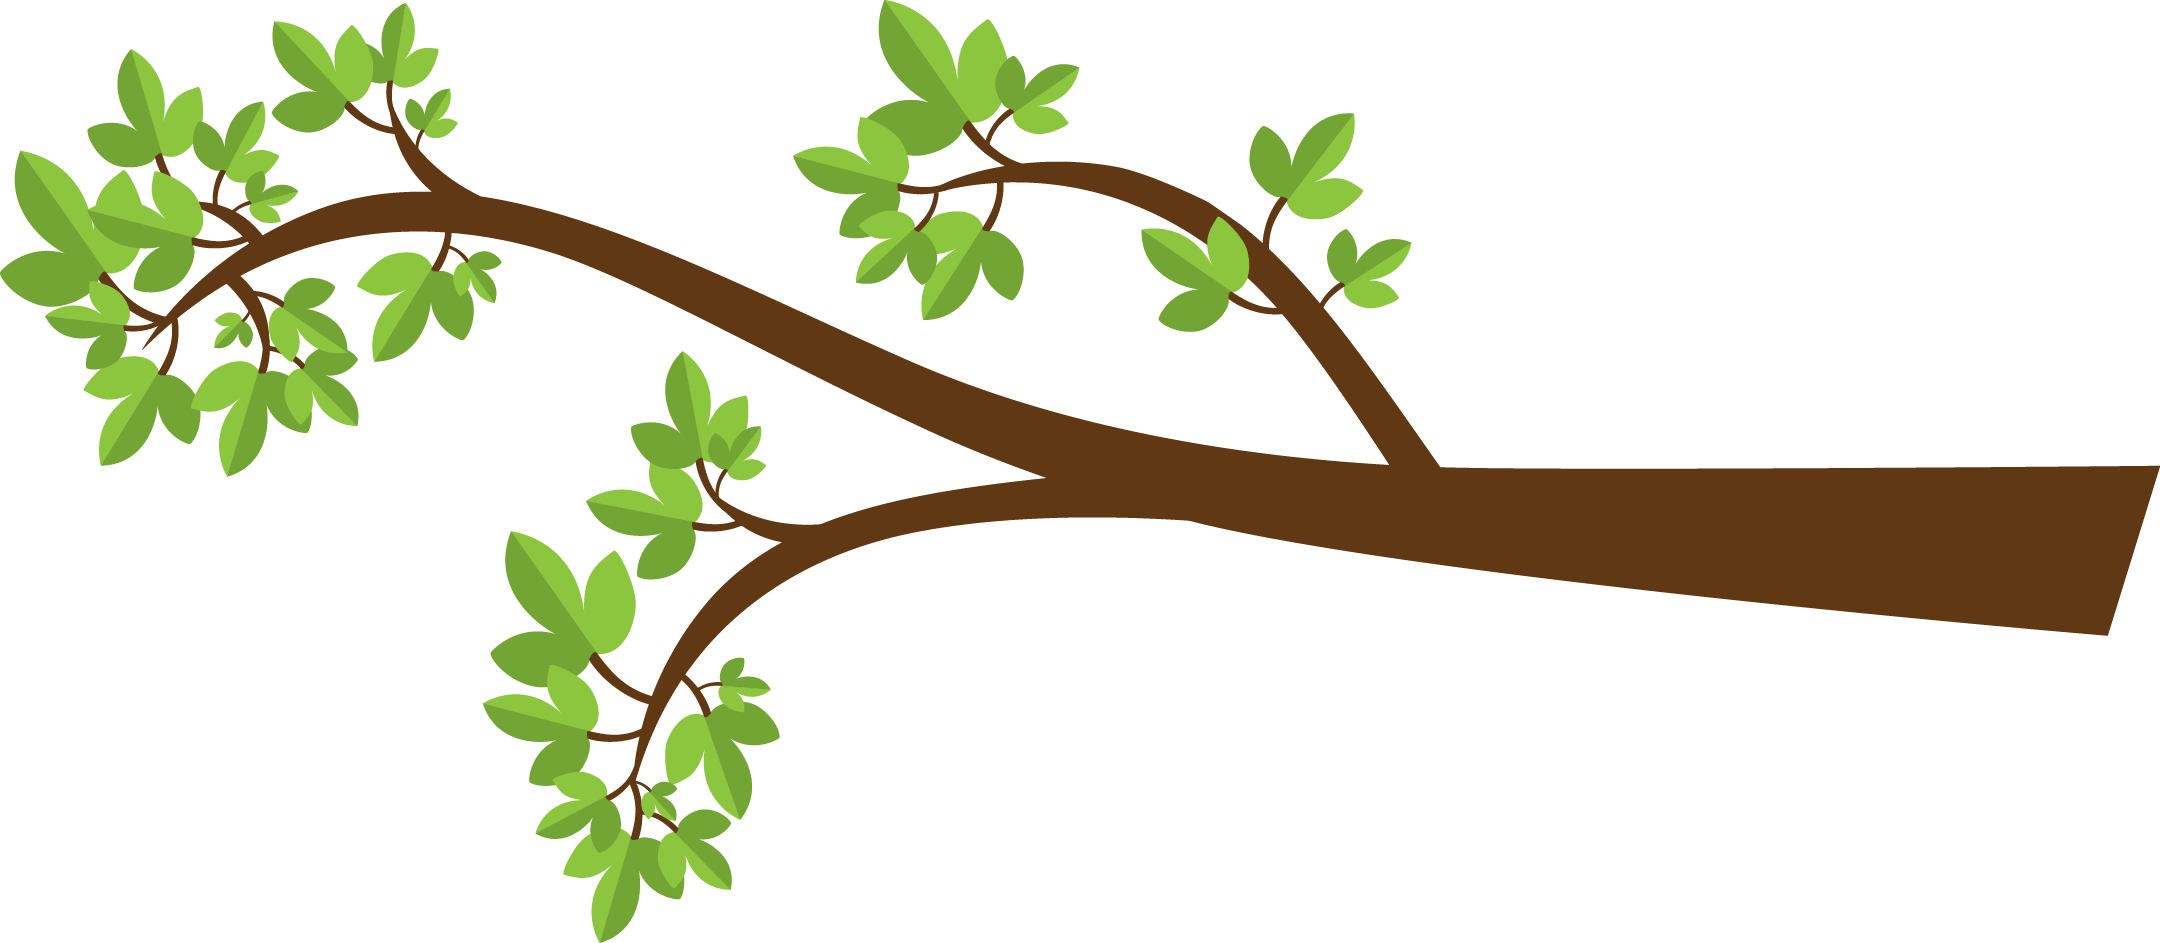 Tree switch clipart jpg free stock Image Of Tree Branch - ClipArt Best | Crafty stuff | Pinterest ... jpg free stock